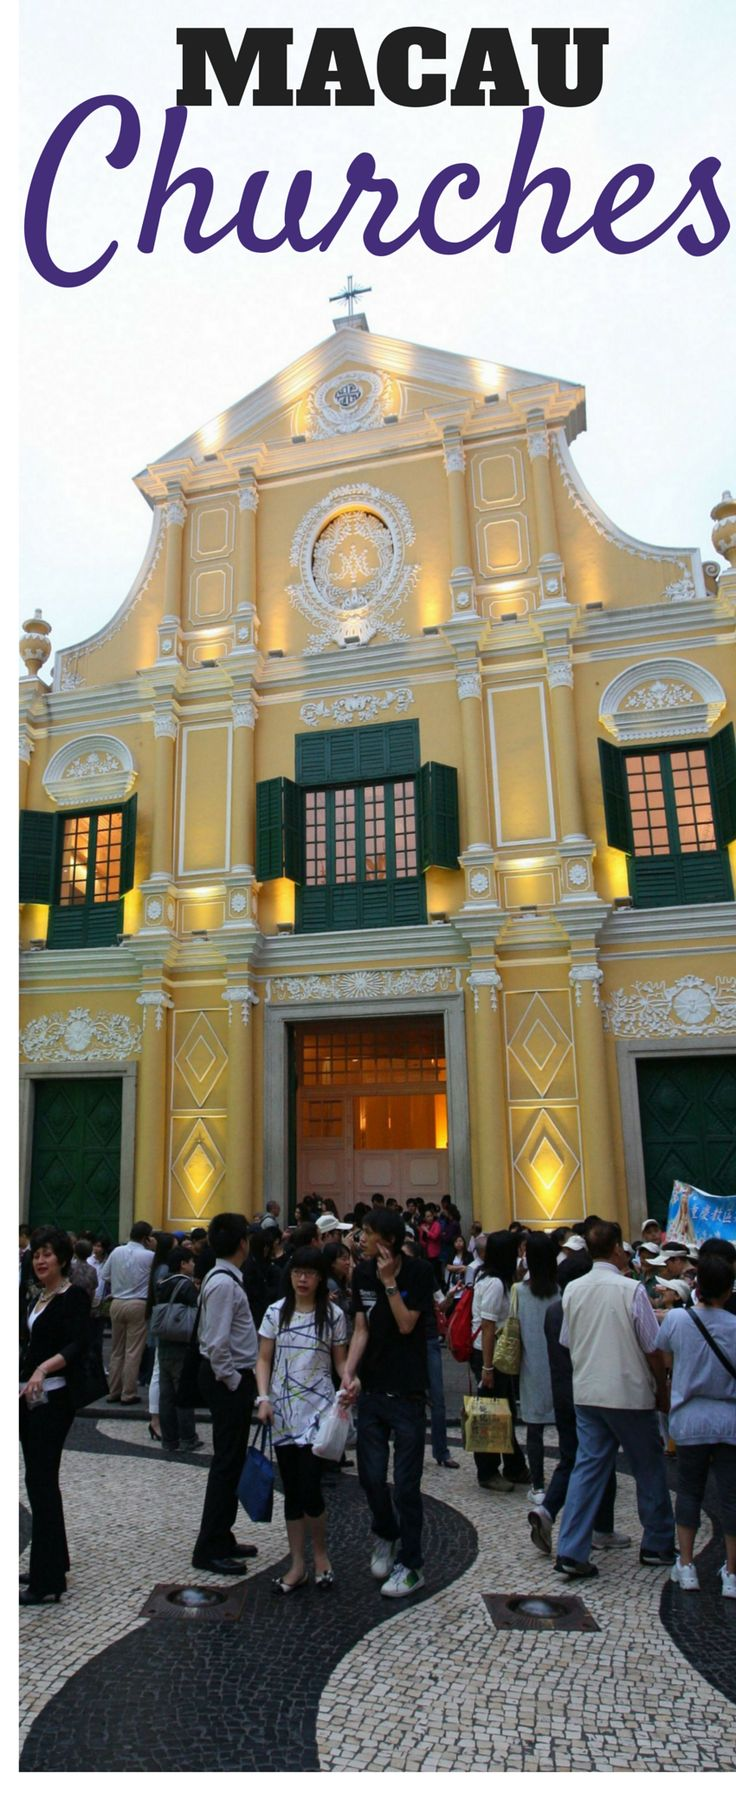 Beautiful St. Dominic's Church in Macau! One of many historical churches throughout the city.